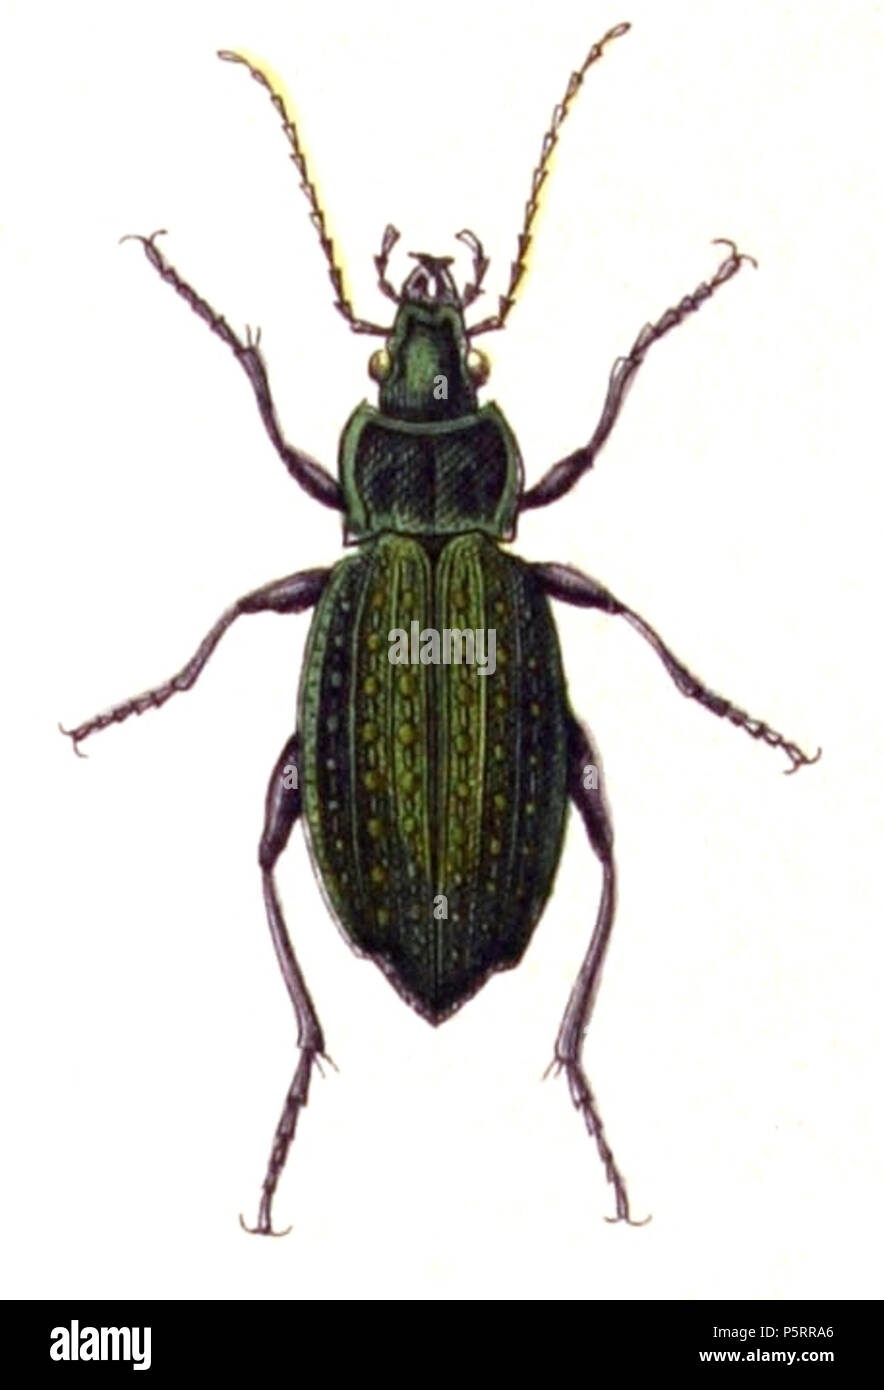 N/A. Carabus clathratus, from Calwer's Käferbuch, Table 3, Picture 3. Taxonomy was updated to 2008, using mostly the sites Fauna Europaea and BioLib. Please contact Sarefo if the determination is wrong! . 4 September 2010, 21:44 (UTC).  Carabus.clathratus.-.calwer.03.03.jpg: Book by    Carl Gustav Calwer  (1821–1874)    Description German ornithologist and entomologist  Date of birth/death 11 November 1821 19 August 1874  Location of birth/death Stuttgart Mineralbad Berg  Authority control  : Q78413 VIAF:64757747 ISNI:0000 0001 0980 5321 GND:116432969 SUDOC:146603133 Koninklijke:07228000X 270  - Stock Image